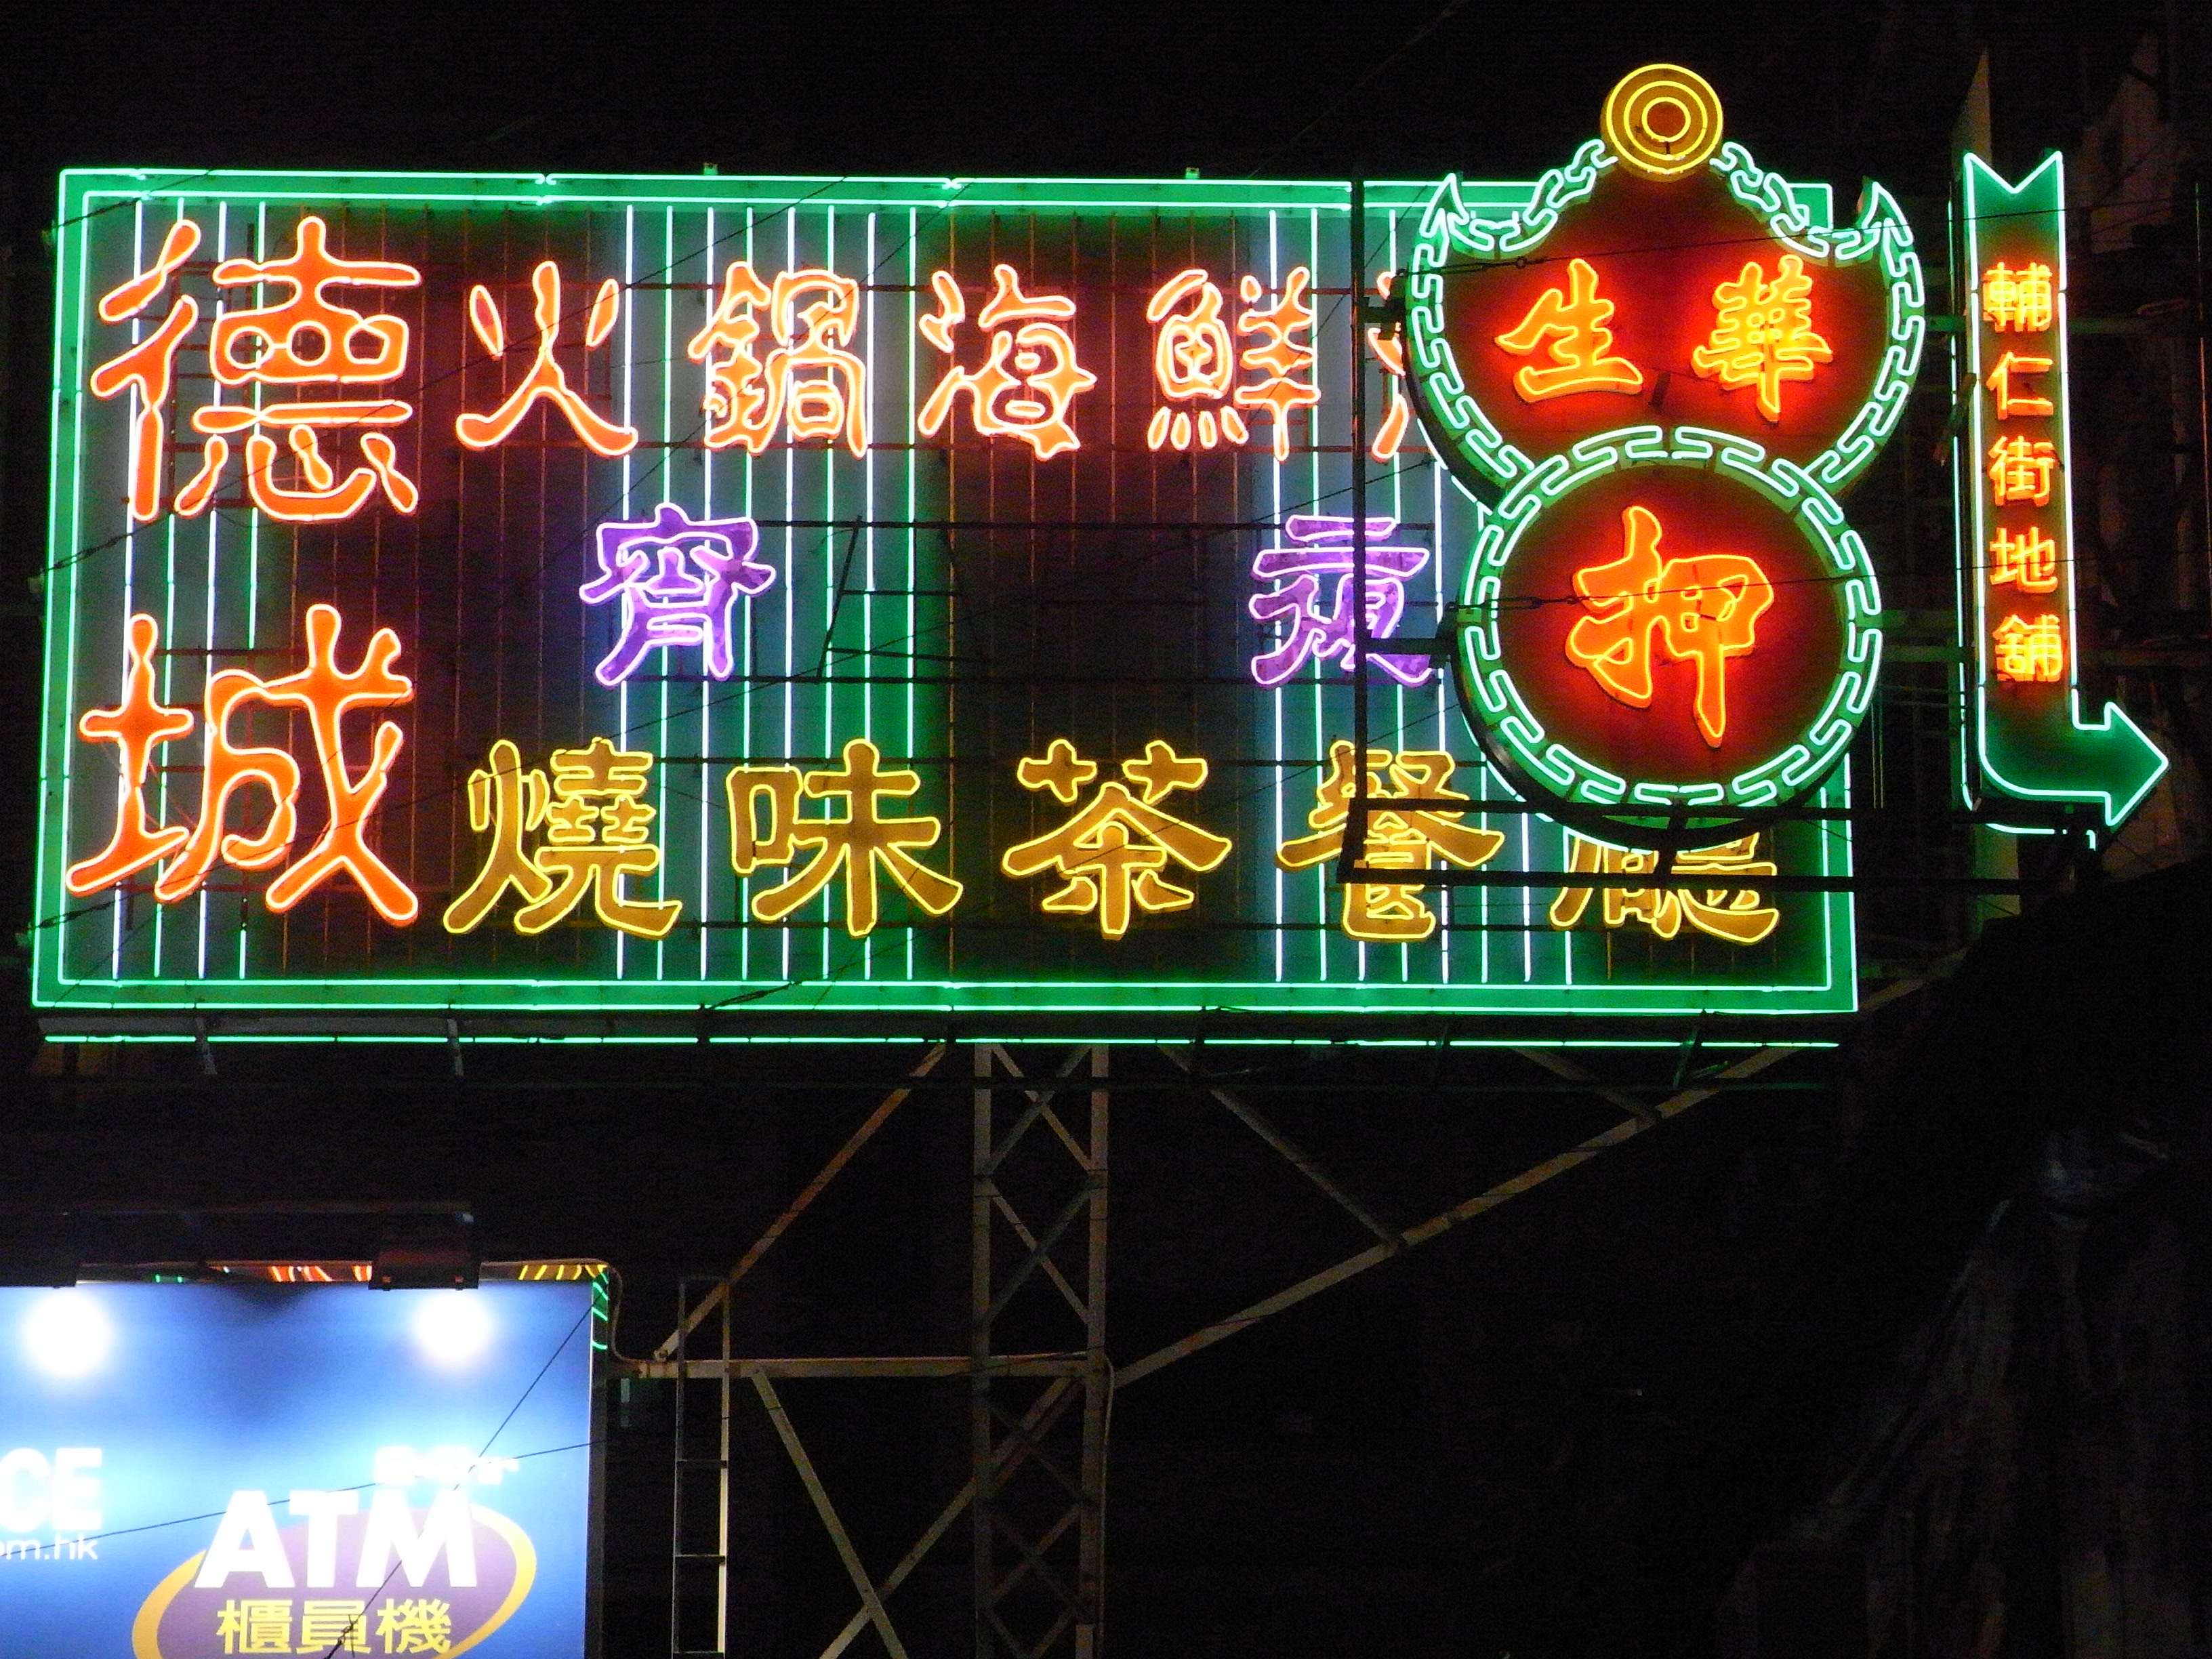 File:HK Kwun Tong night 輔仁街 Fu Yan Street 華生押 Pawn